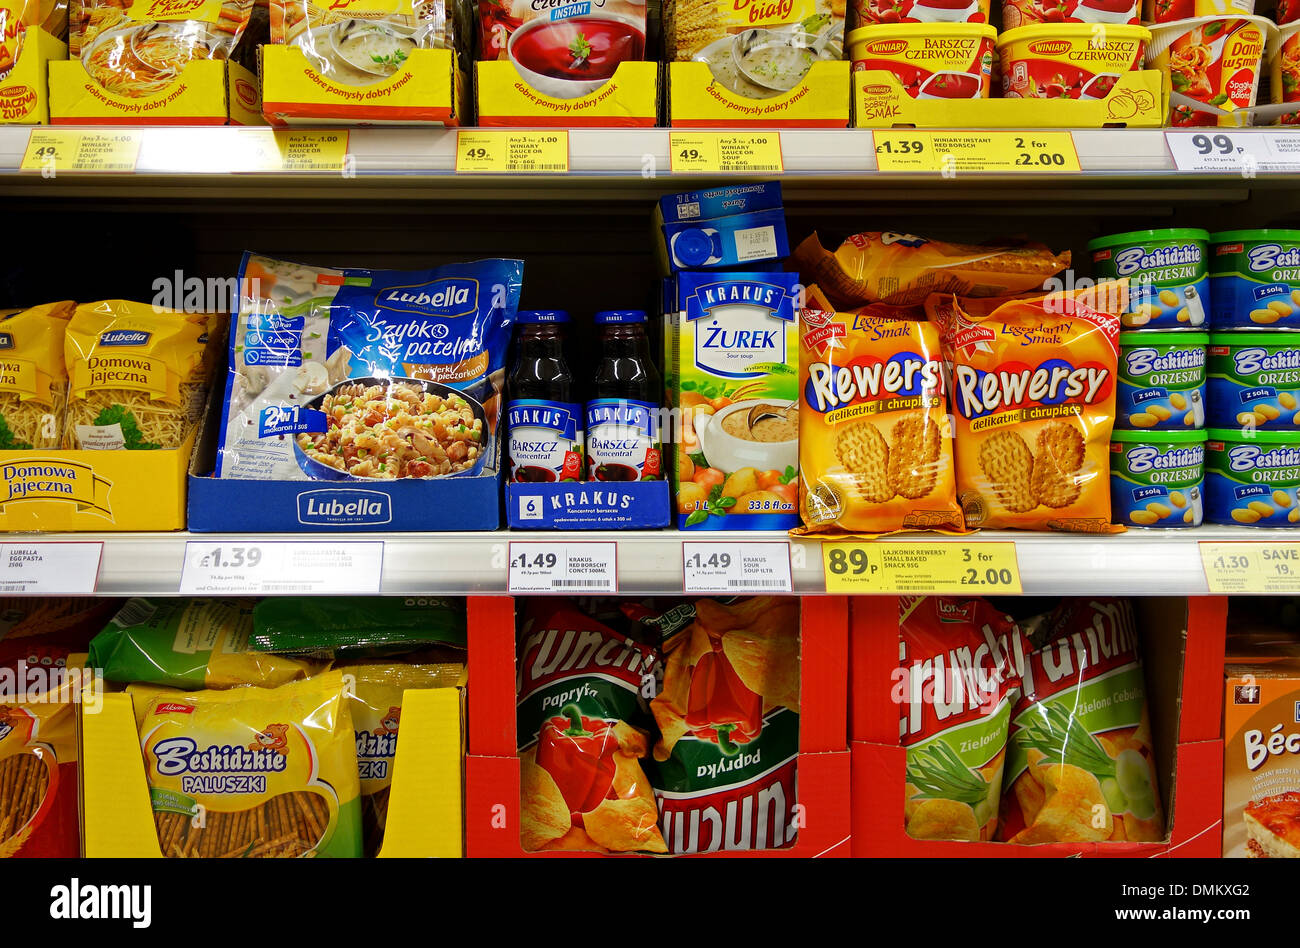 Polish food on sale in a uk tesco supermarket - Stock Image